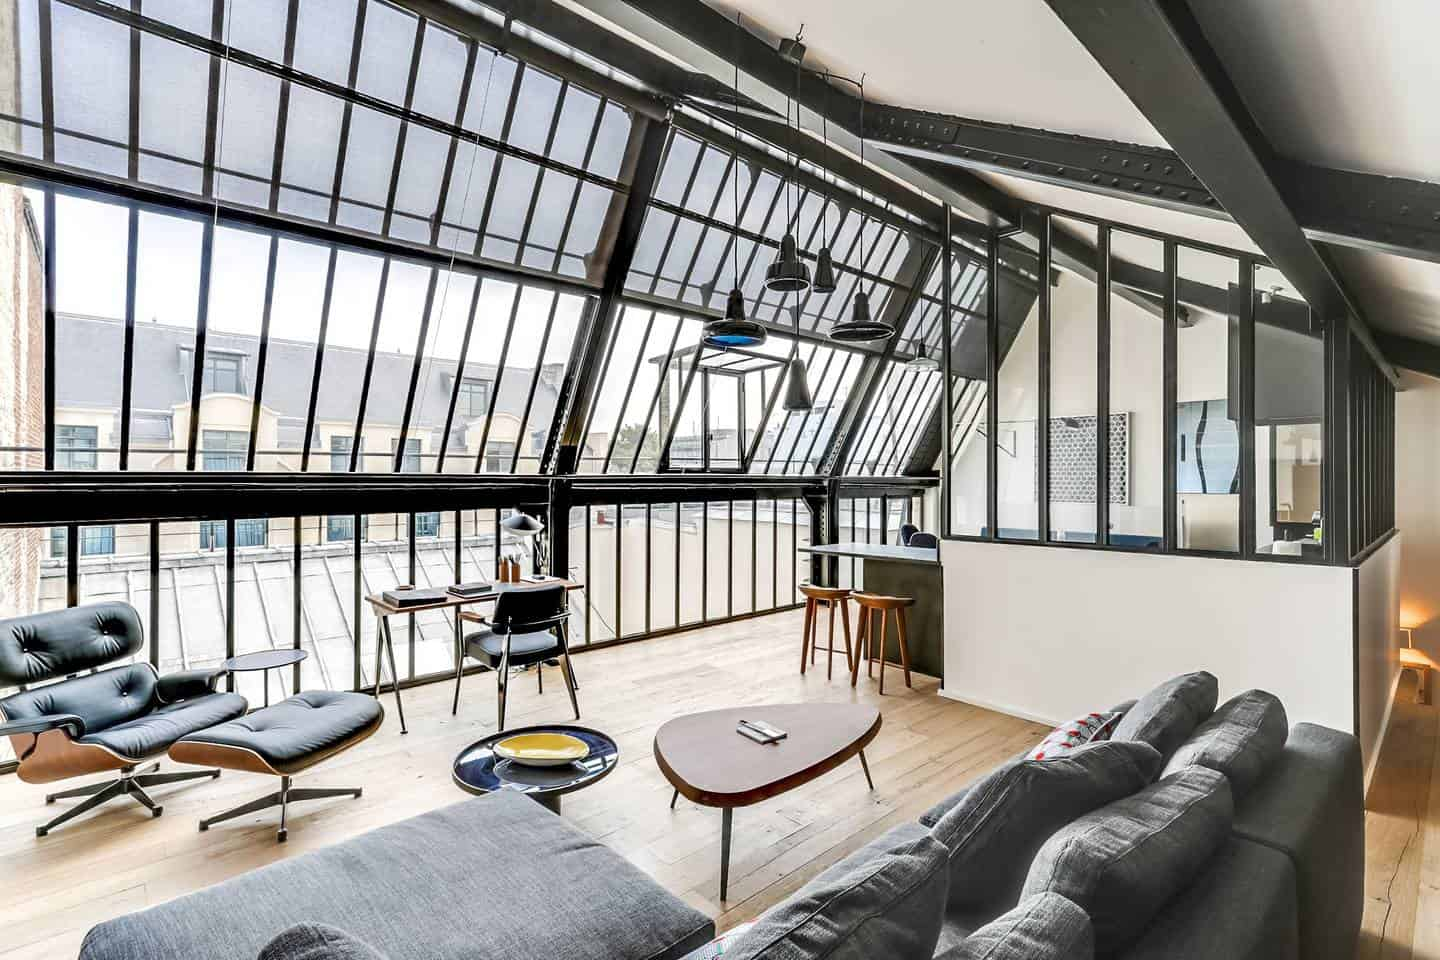 Wow! This Airbnb Paris listing near Concorde is dreamy. You have to see the pictures!